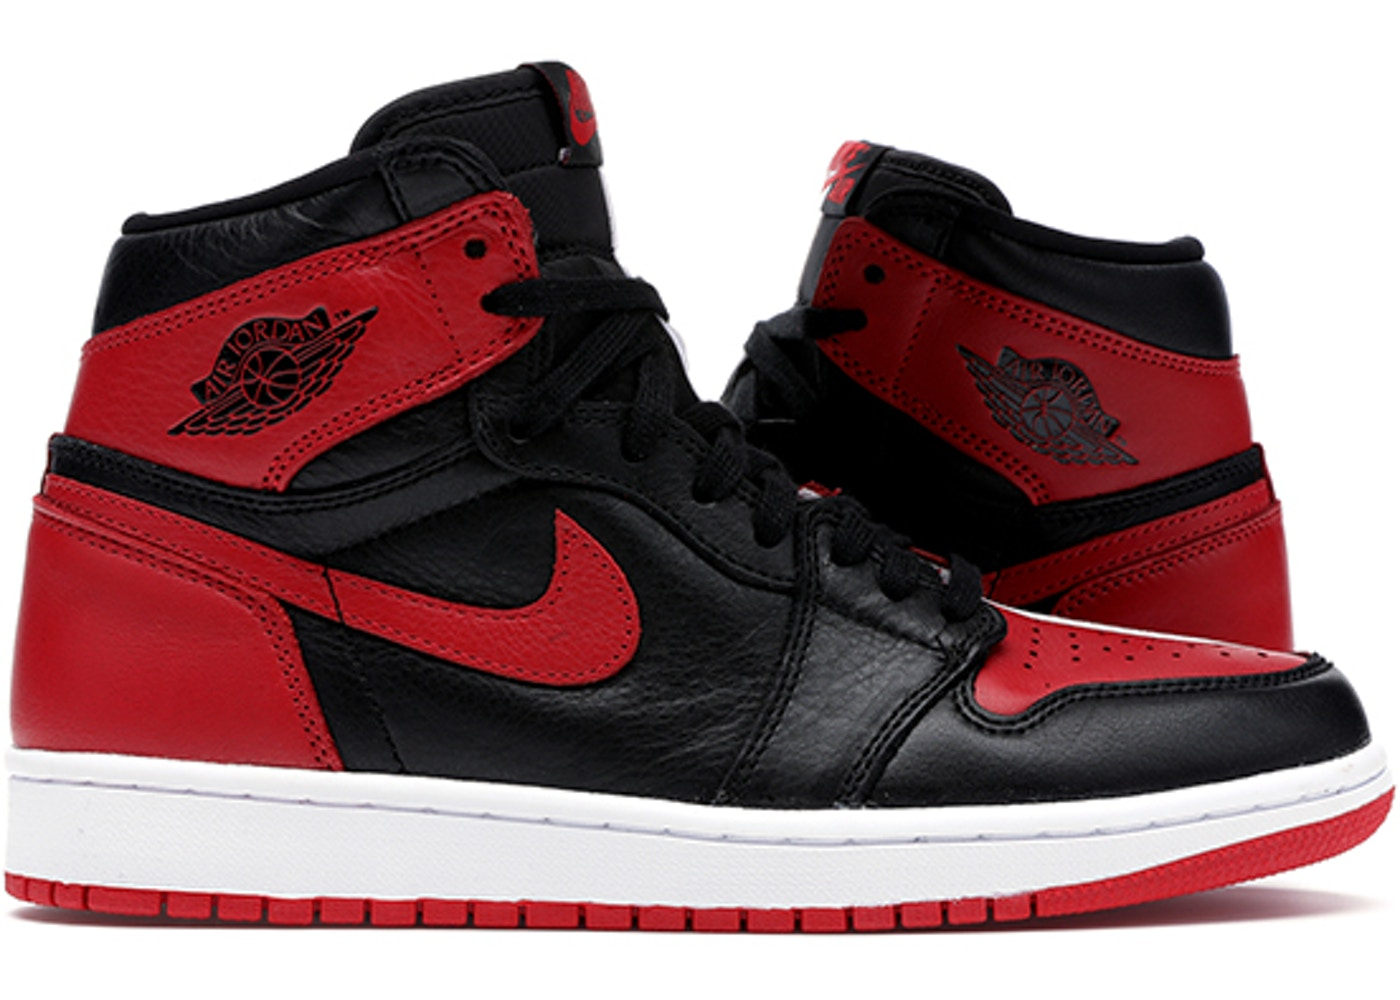 d9efdc7d021 Buy Air Jordan 1 Shoes   Deadstock Sneakers